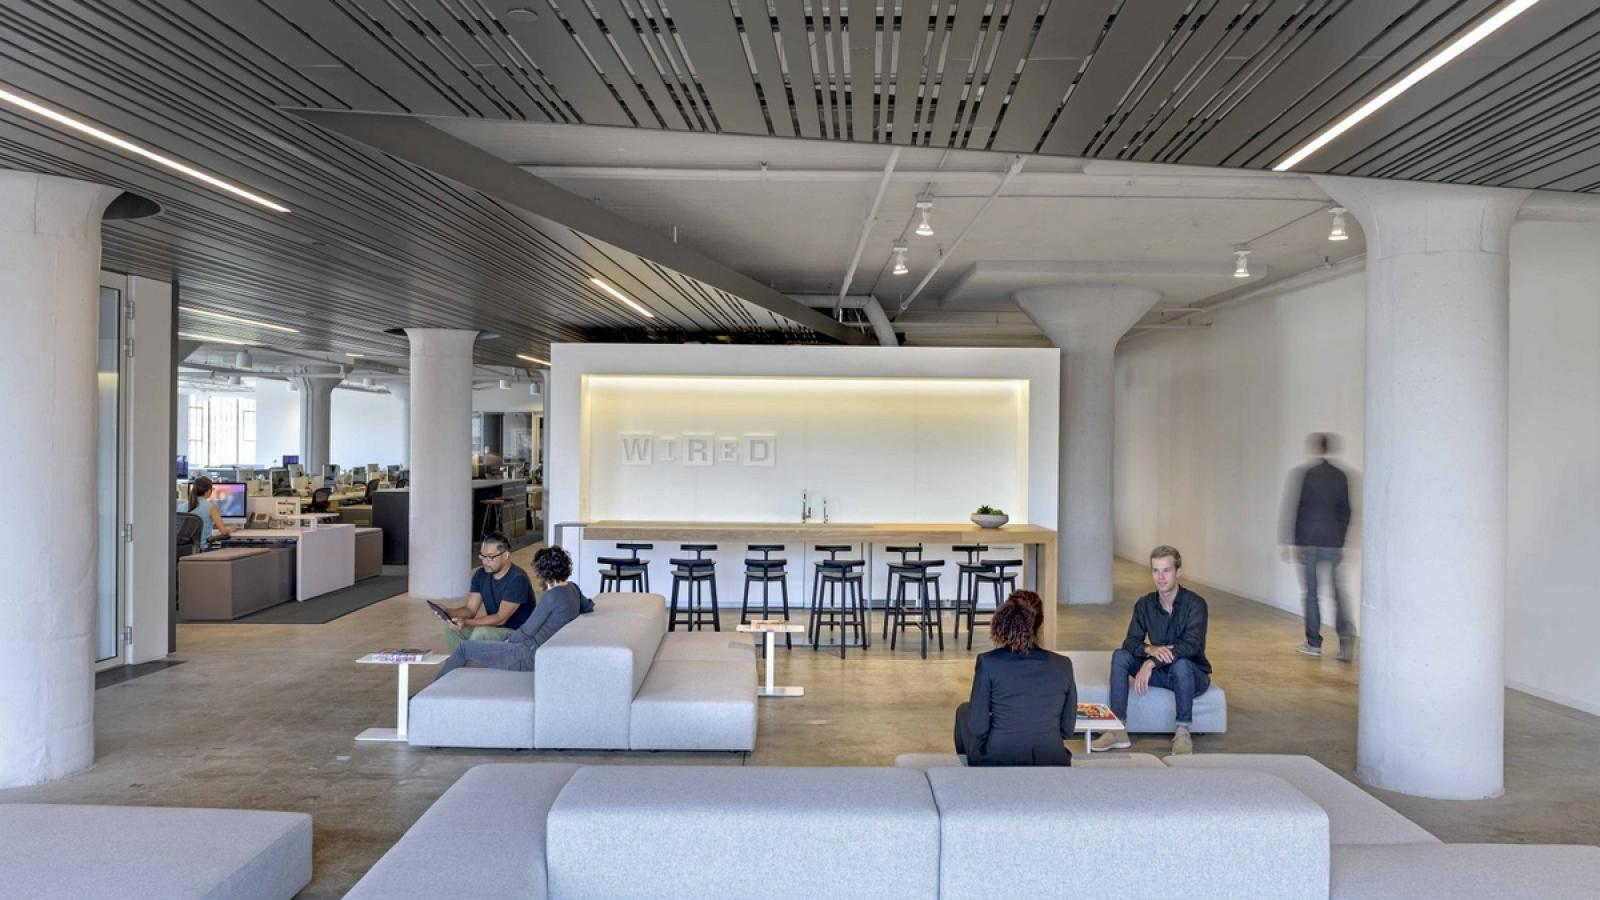 Inside Look at WIRED Offices - San Francisco